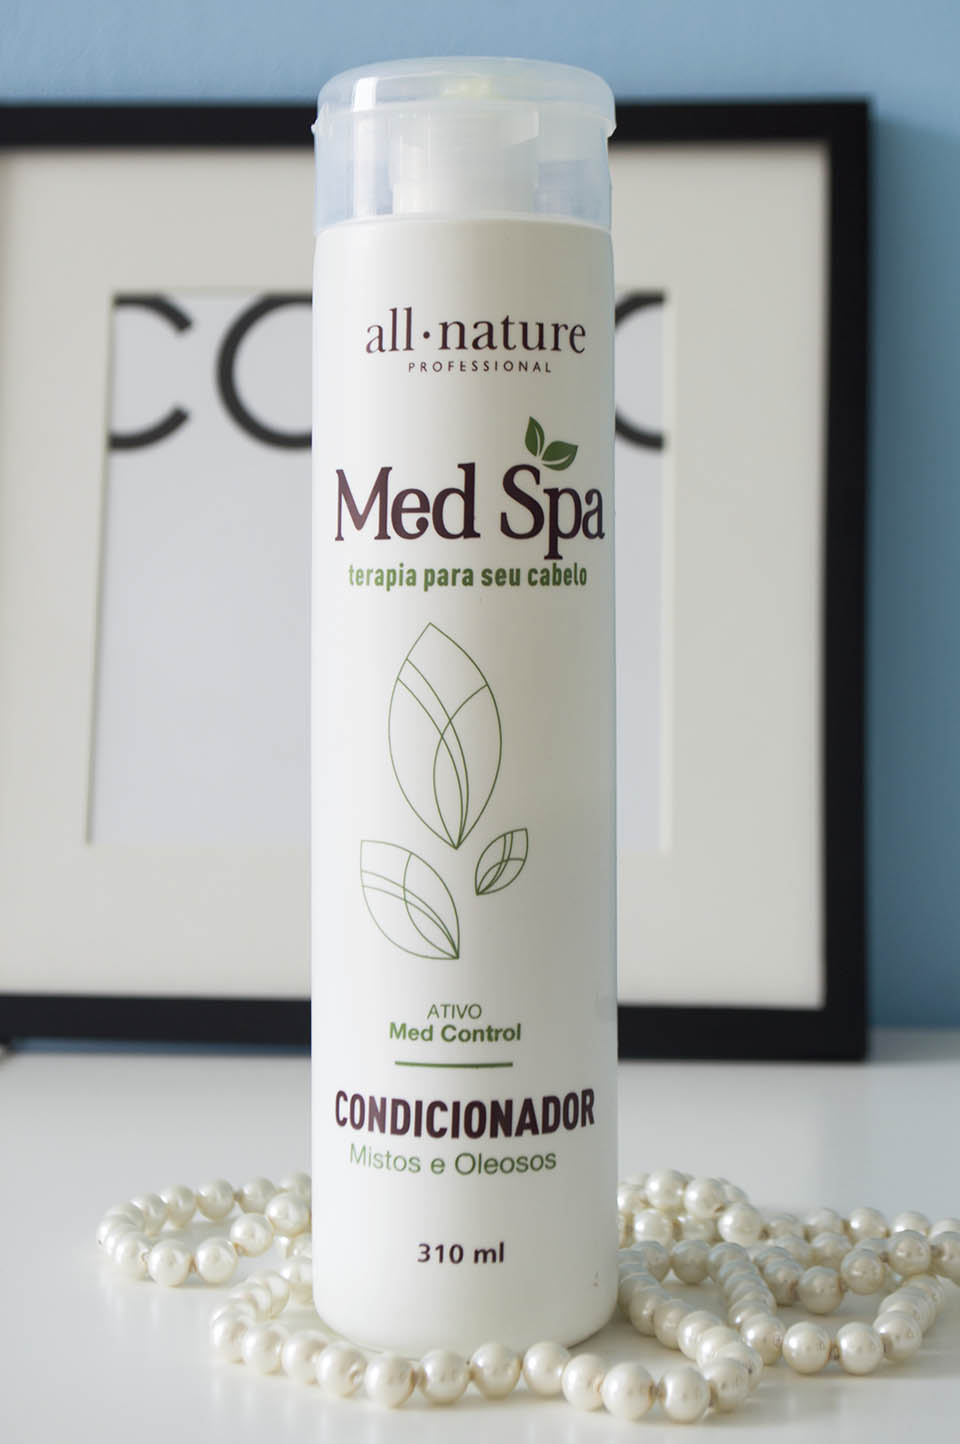 Condicionador Med Spa da All Nature